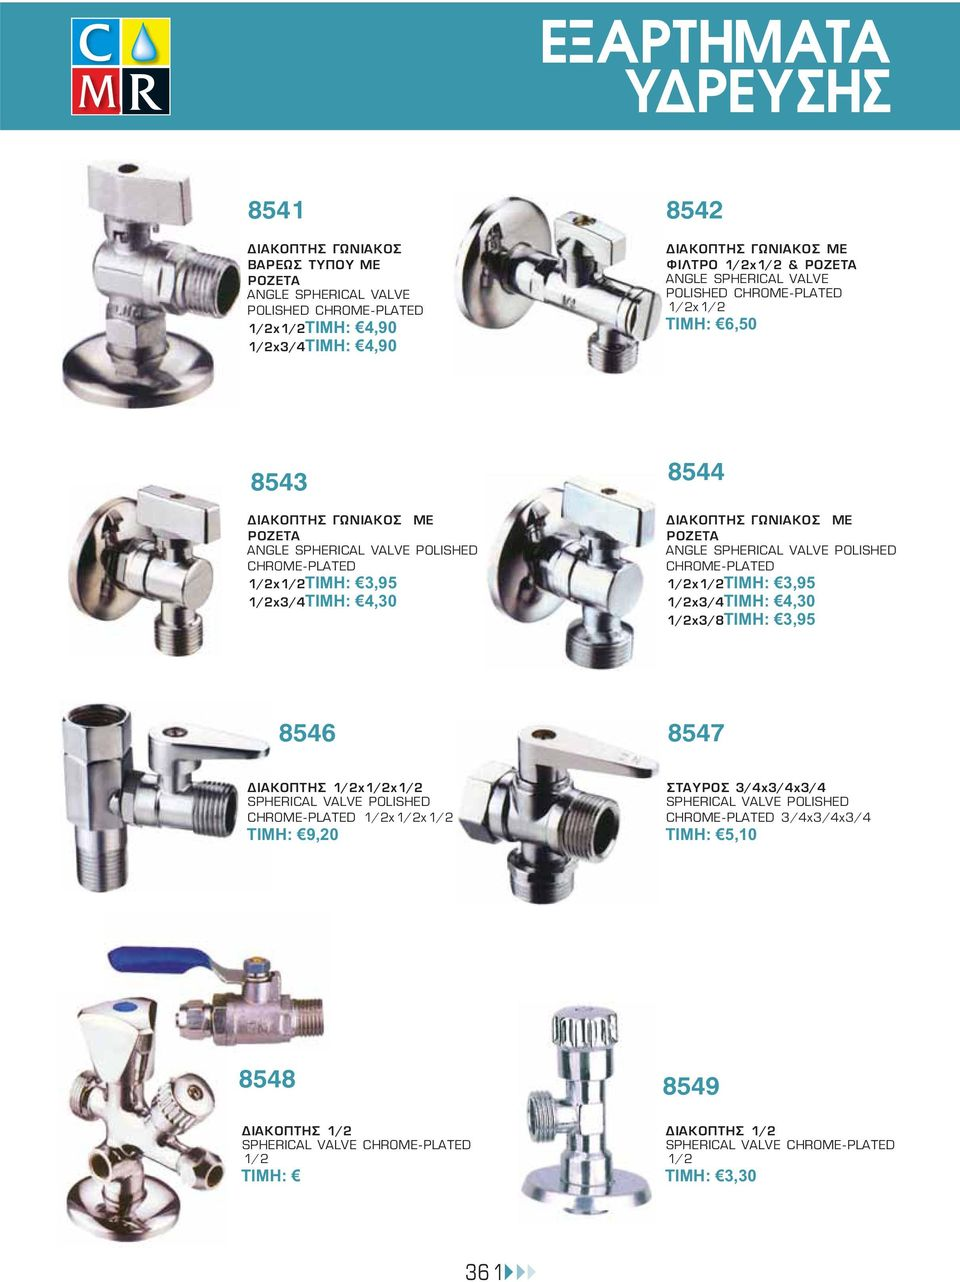 ANGLE SPHERICAL VALVE POLISHED CHROME-PLATED 1/2x1/2ΤΙΜΗ: 3,95 1/2x3/4ΤΙΜΗ: 4,30 1/2x3/8ΤΙΜΗ: 3,95 8546 8547 ΔΙΑΚΟΠΤΗΣ 1/2x1/2x1/2 SPHERICAL VALVE POLISHED CHROME-PLATED 1/2x1/2x1/2 ΤΙΜΗ: 9,20